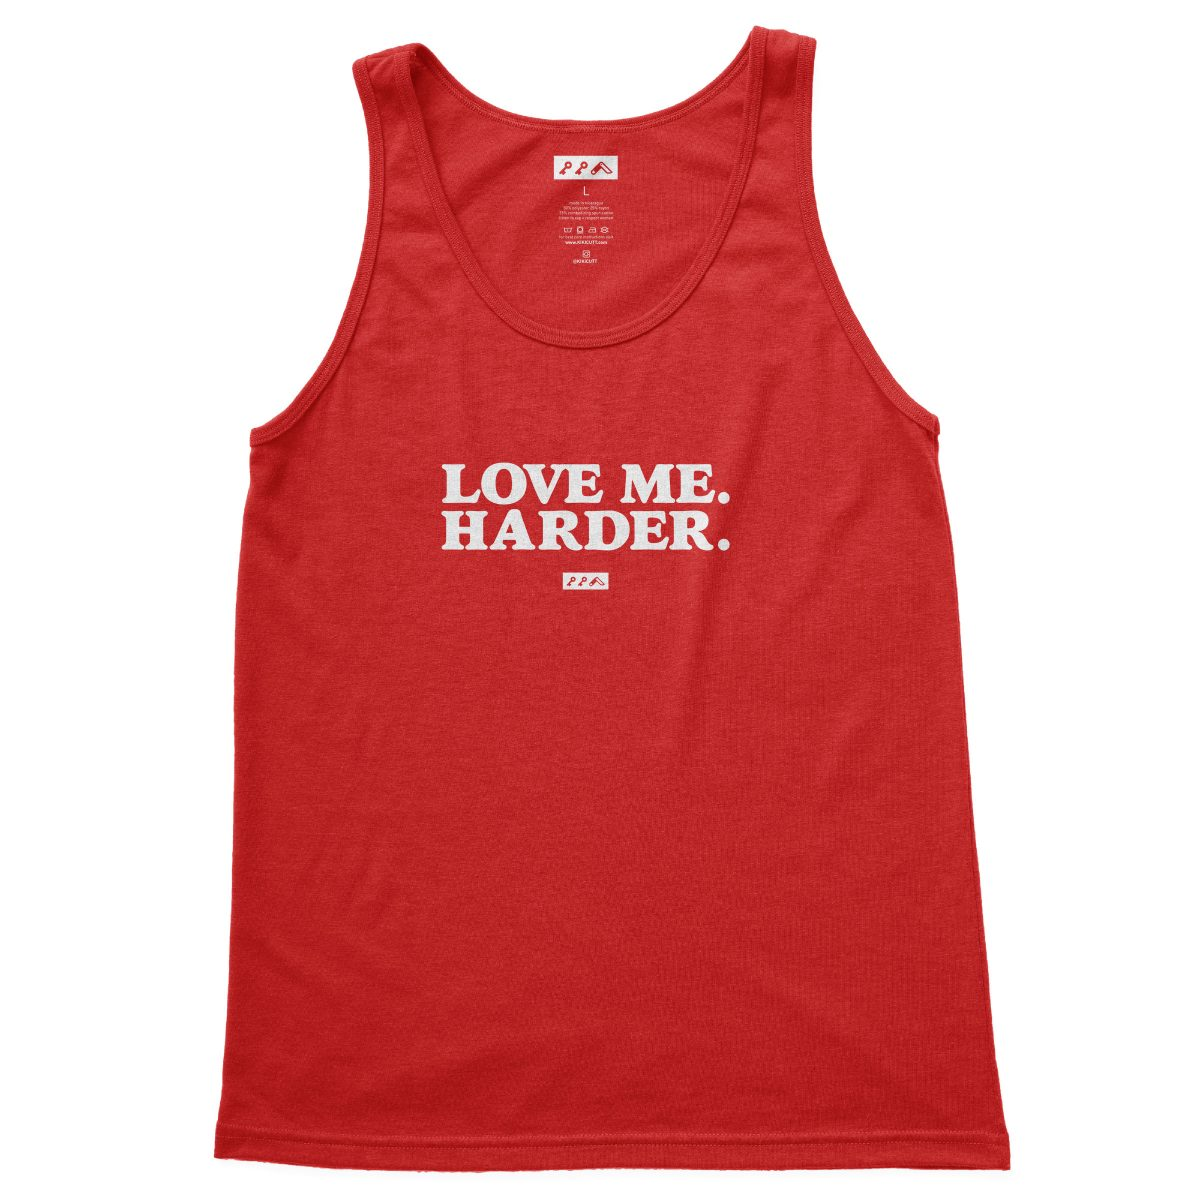 love me harder funny sex quotes tank top red tri-blend at kikicutt.com